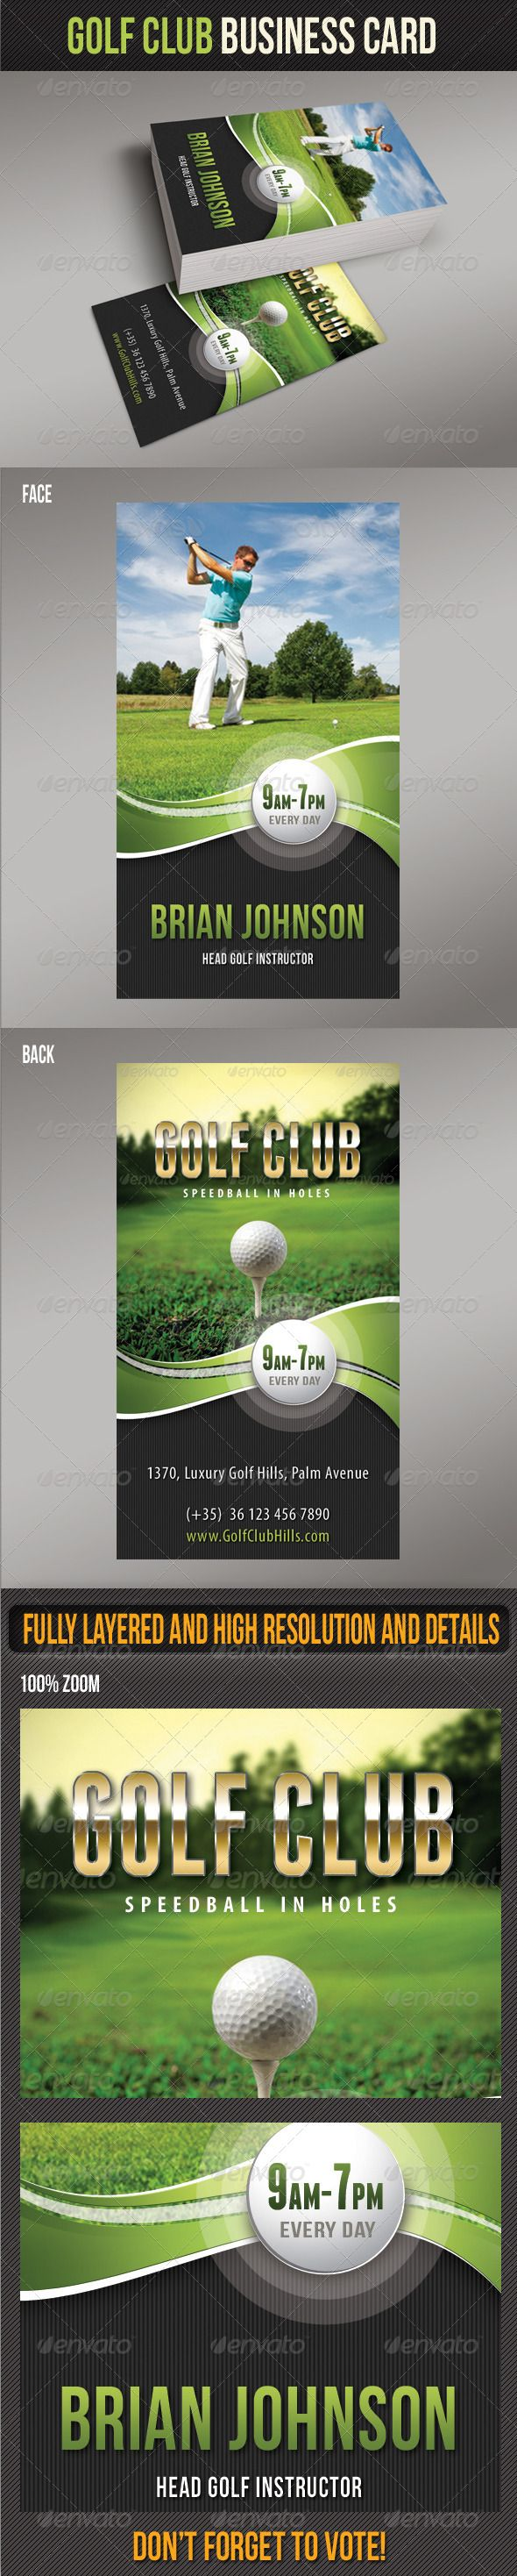 16 best golf instructor business cards images on pinterest golf club business card 1betcityfo Choice Image